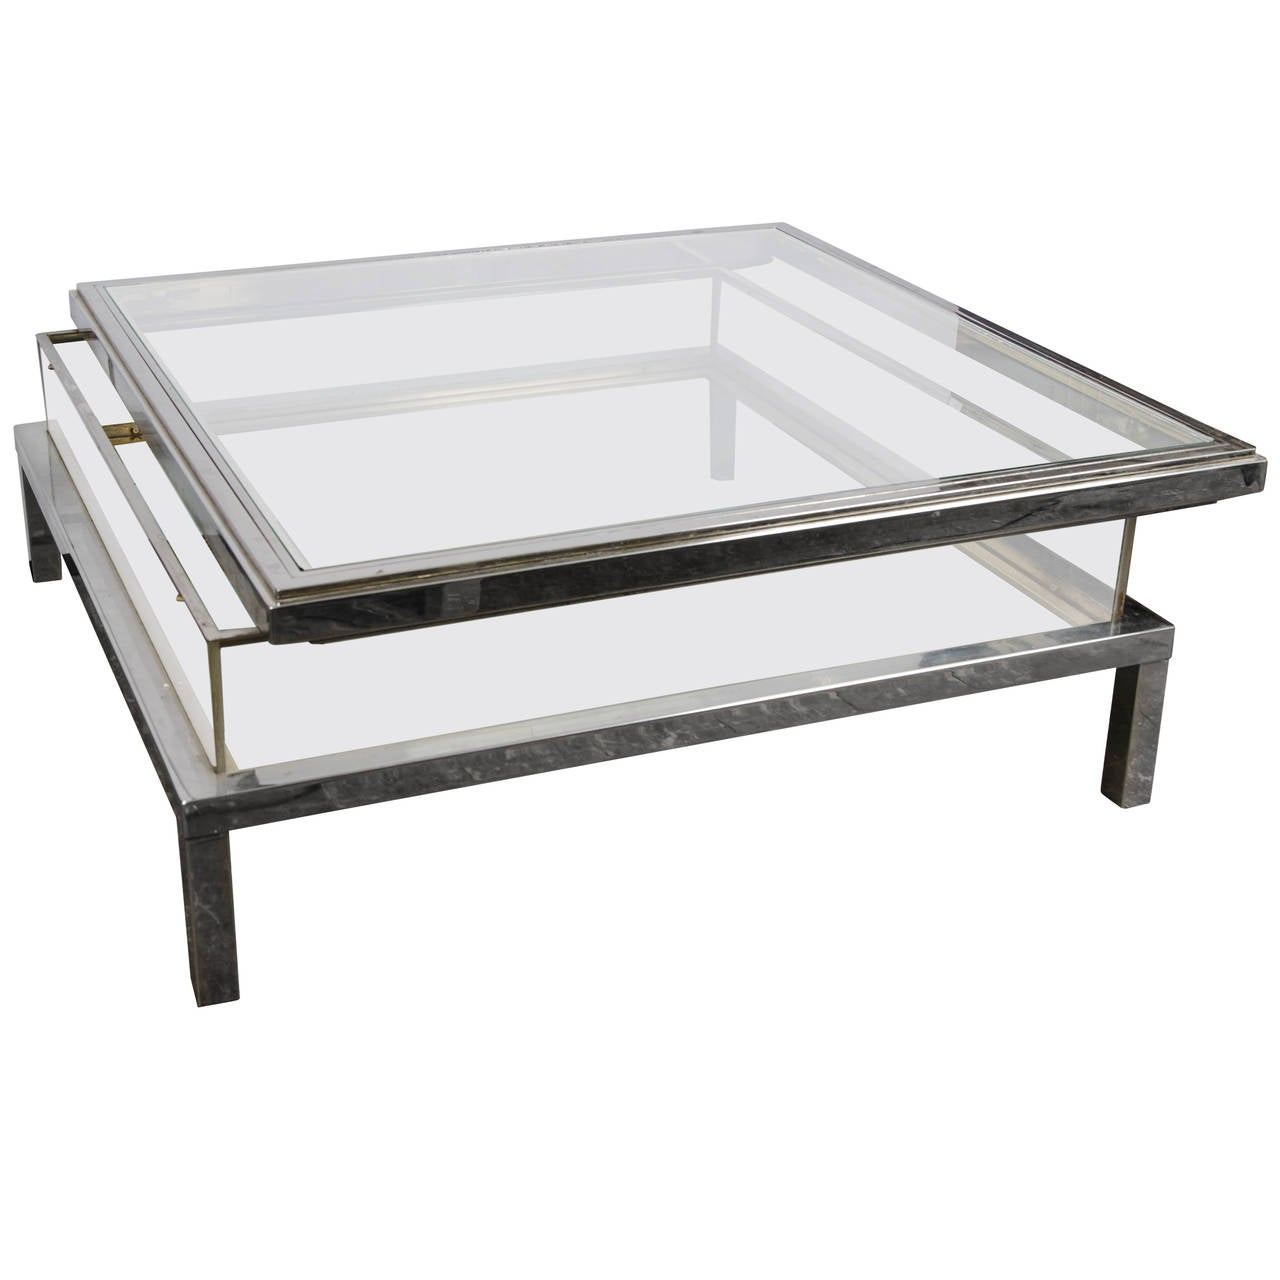 Sliding Top Coffee Table Choice Image